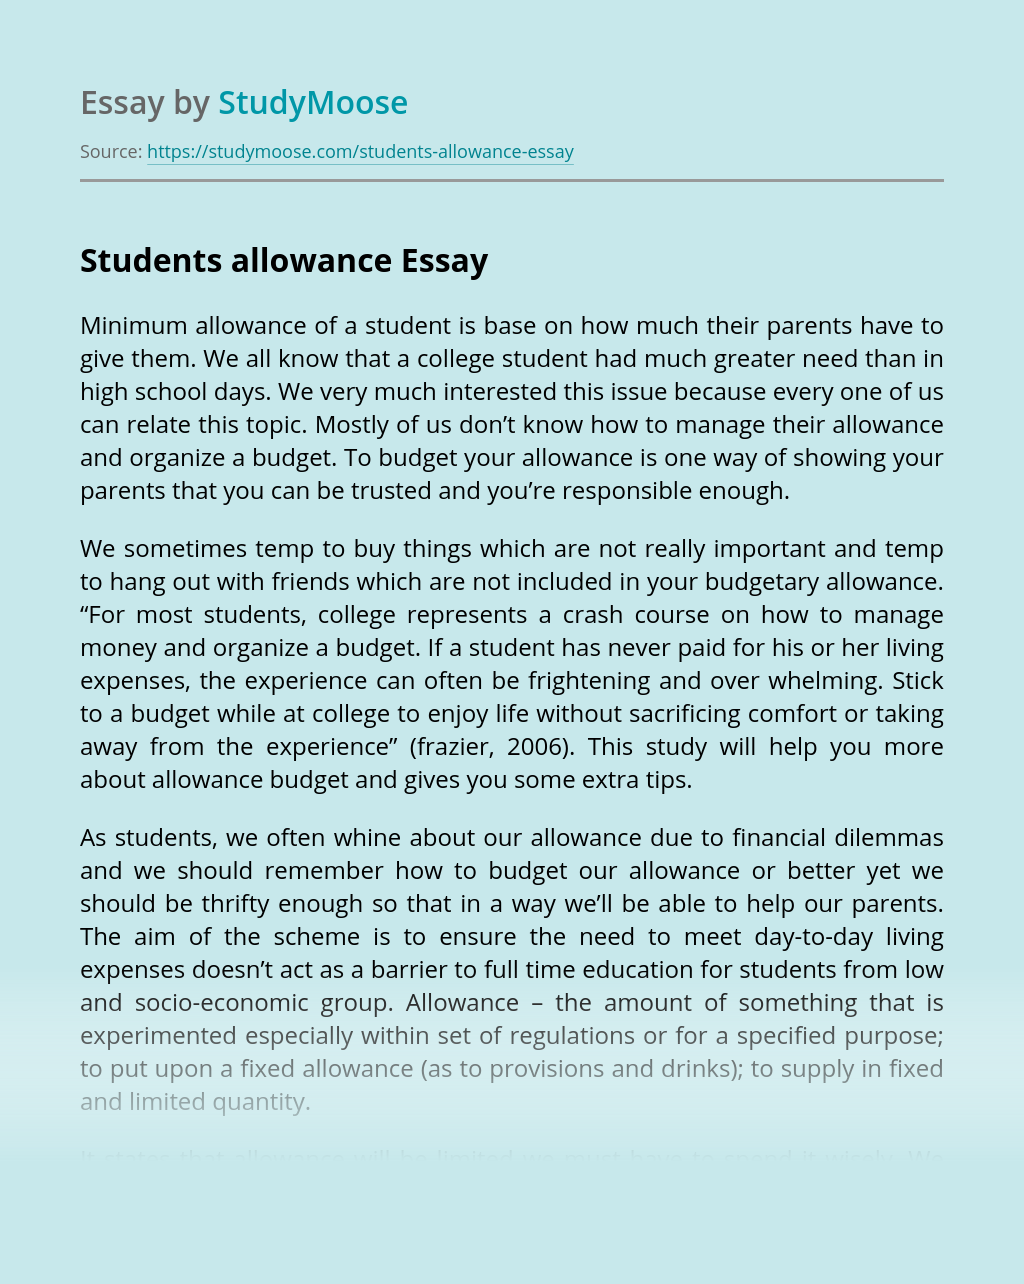 Students allowance